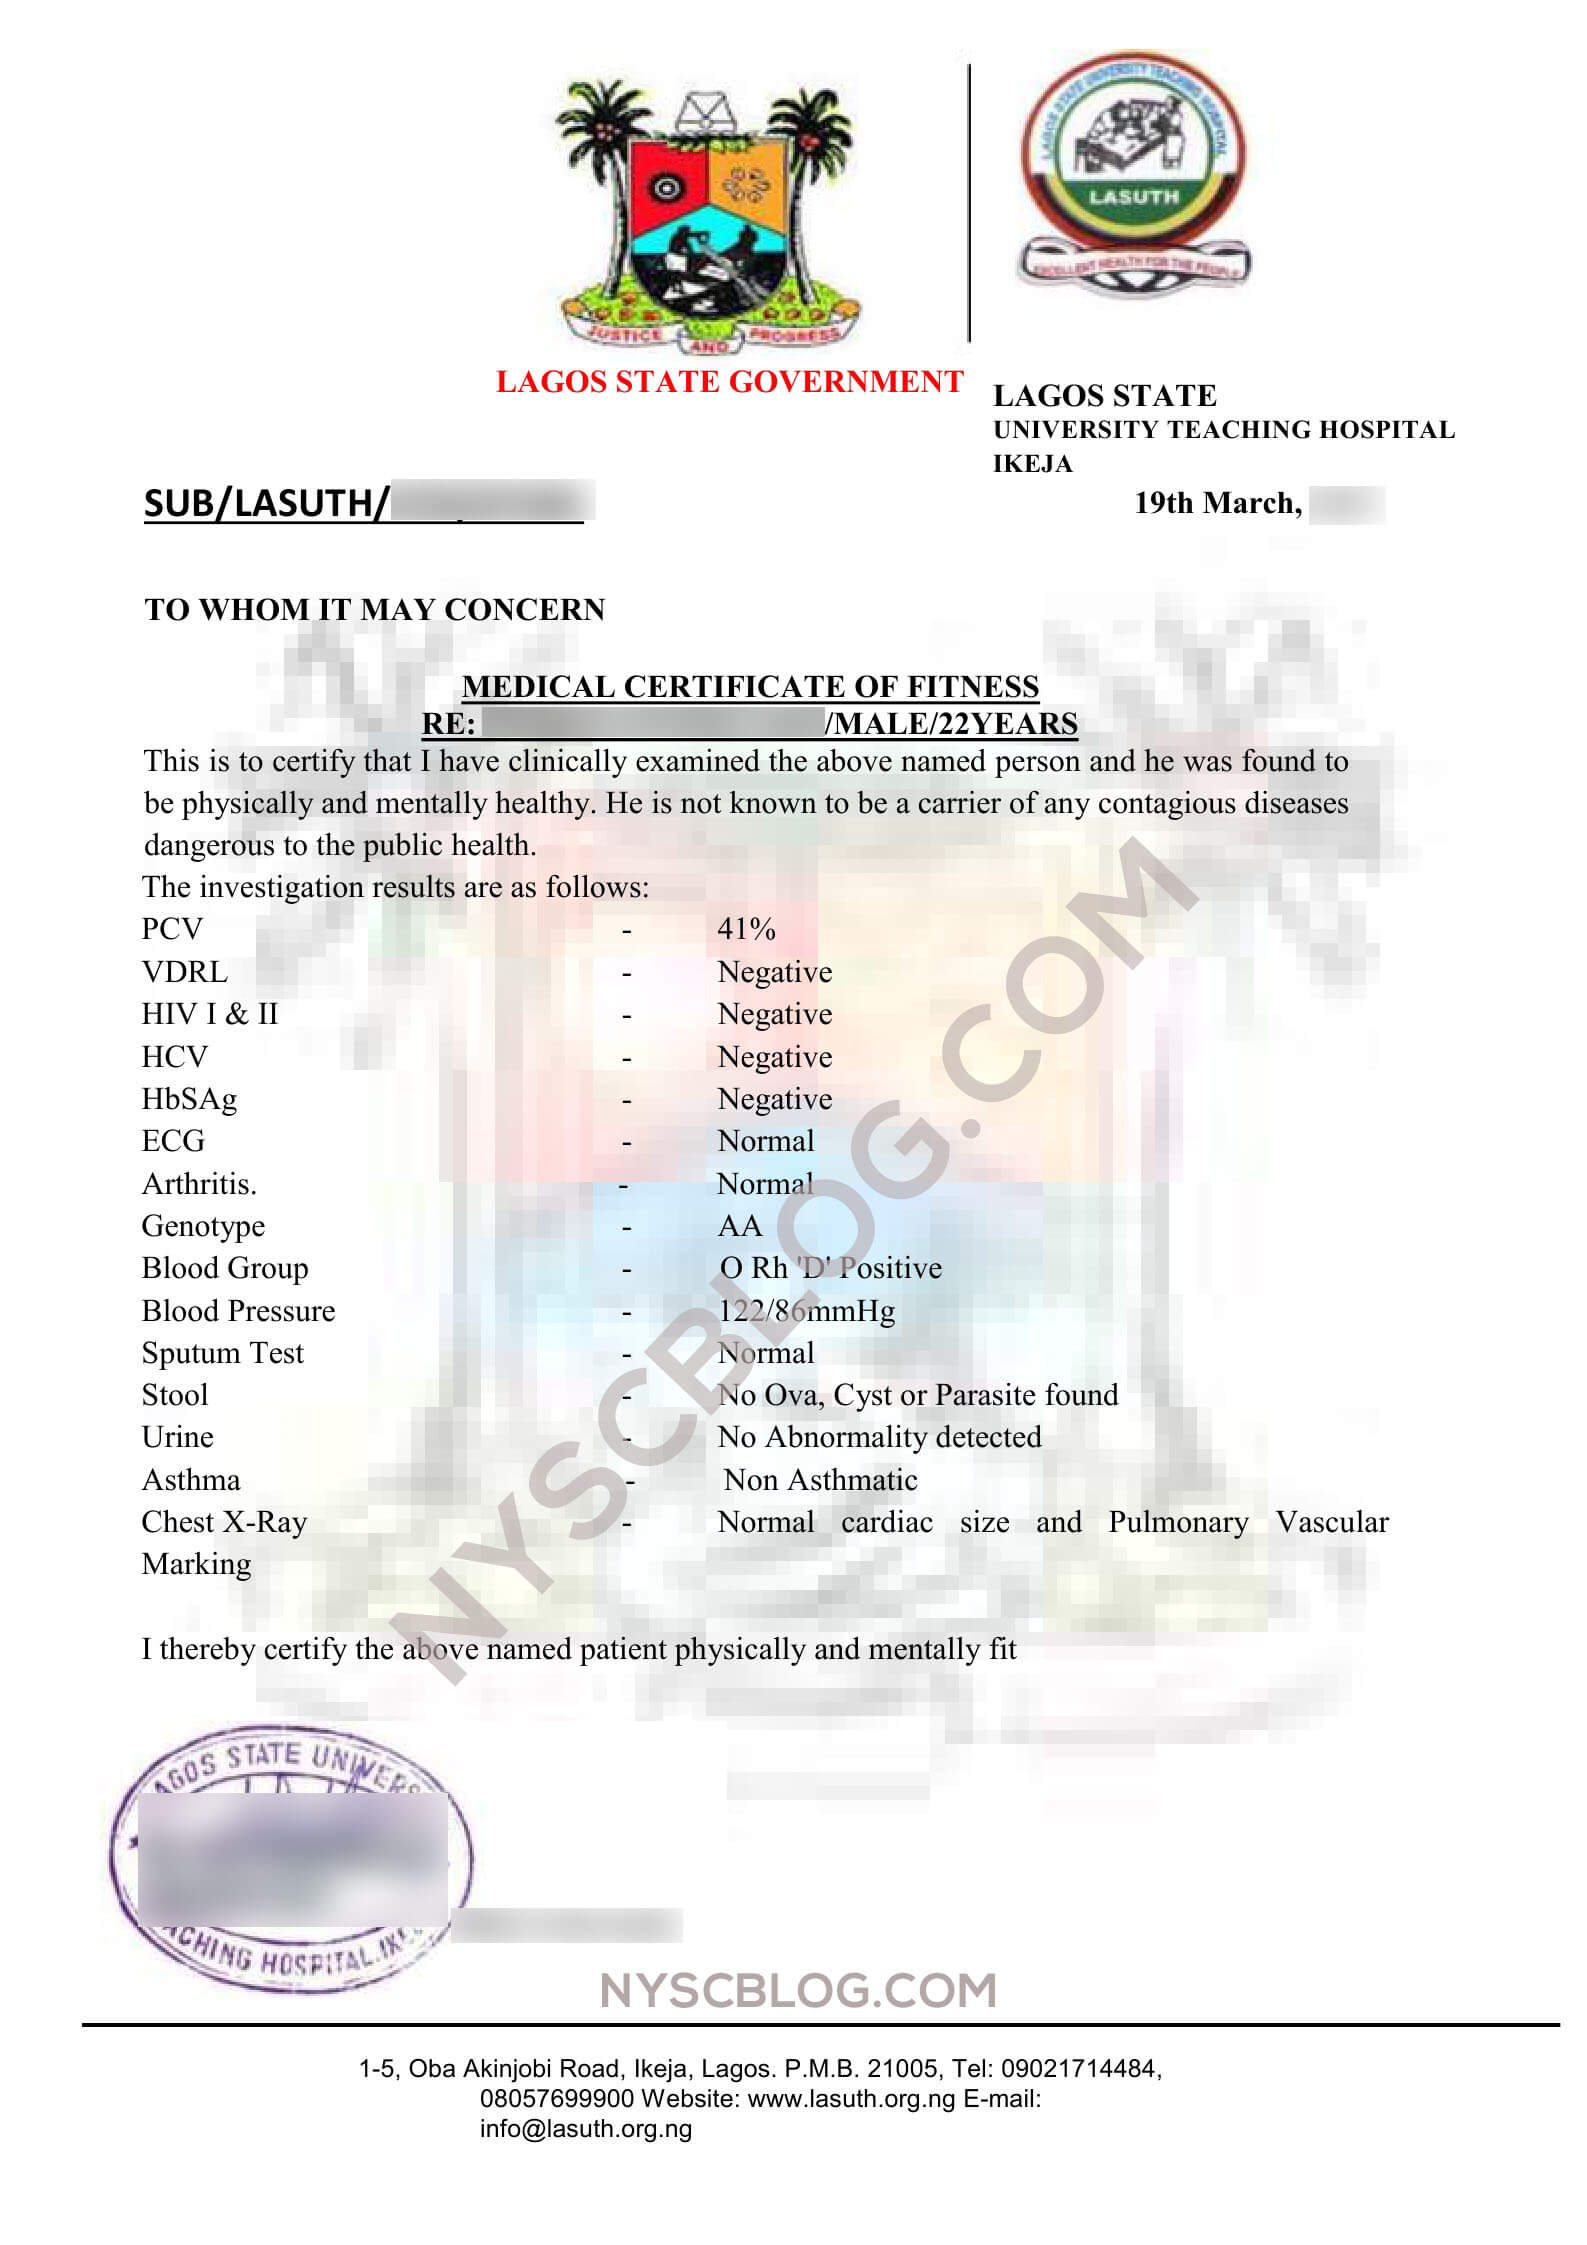 Sample Fitness Certificate From Doctor - Yatay With Regard To Australian Doctors Certificate Template